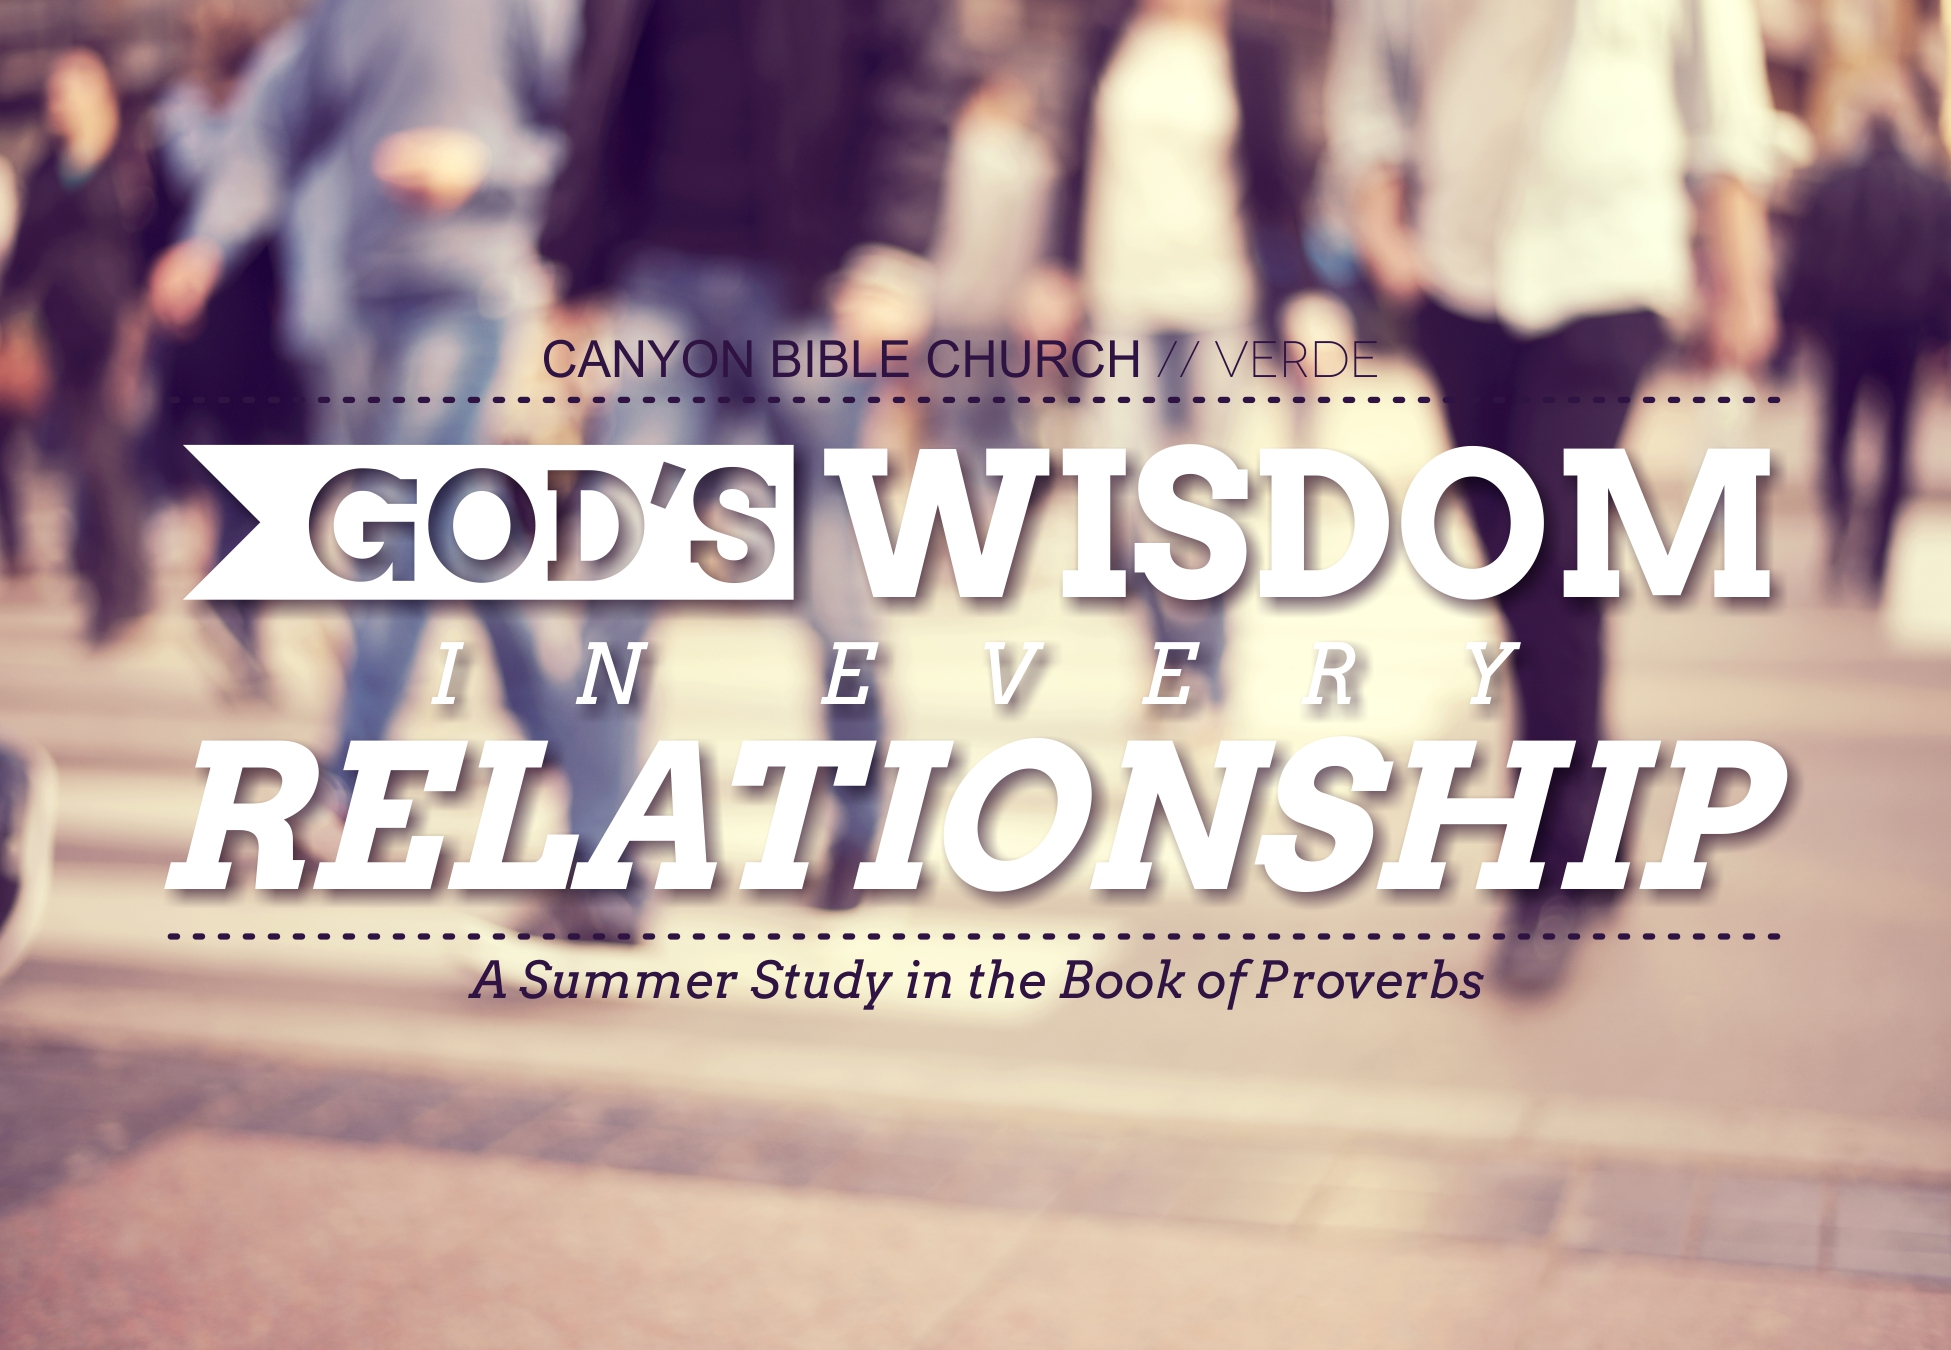 Marriage: Designed for Disciple-Making   Proverbs 14:1, 17:1, 18:22, 24:3-4, 25:24, 31:10, 27-28, 1 Peter 3, Ephesians 5, Genesis 2